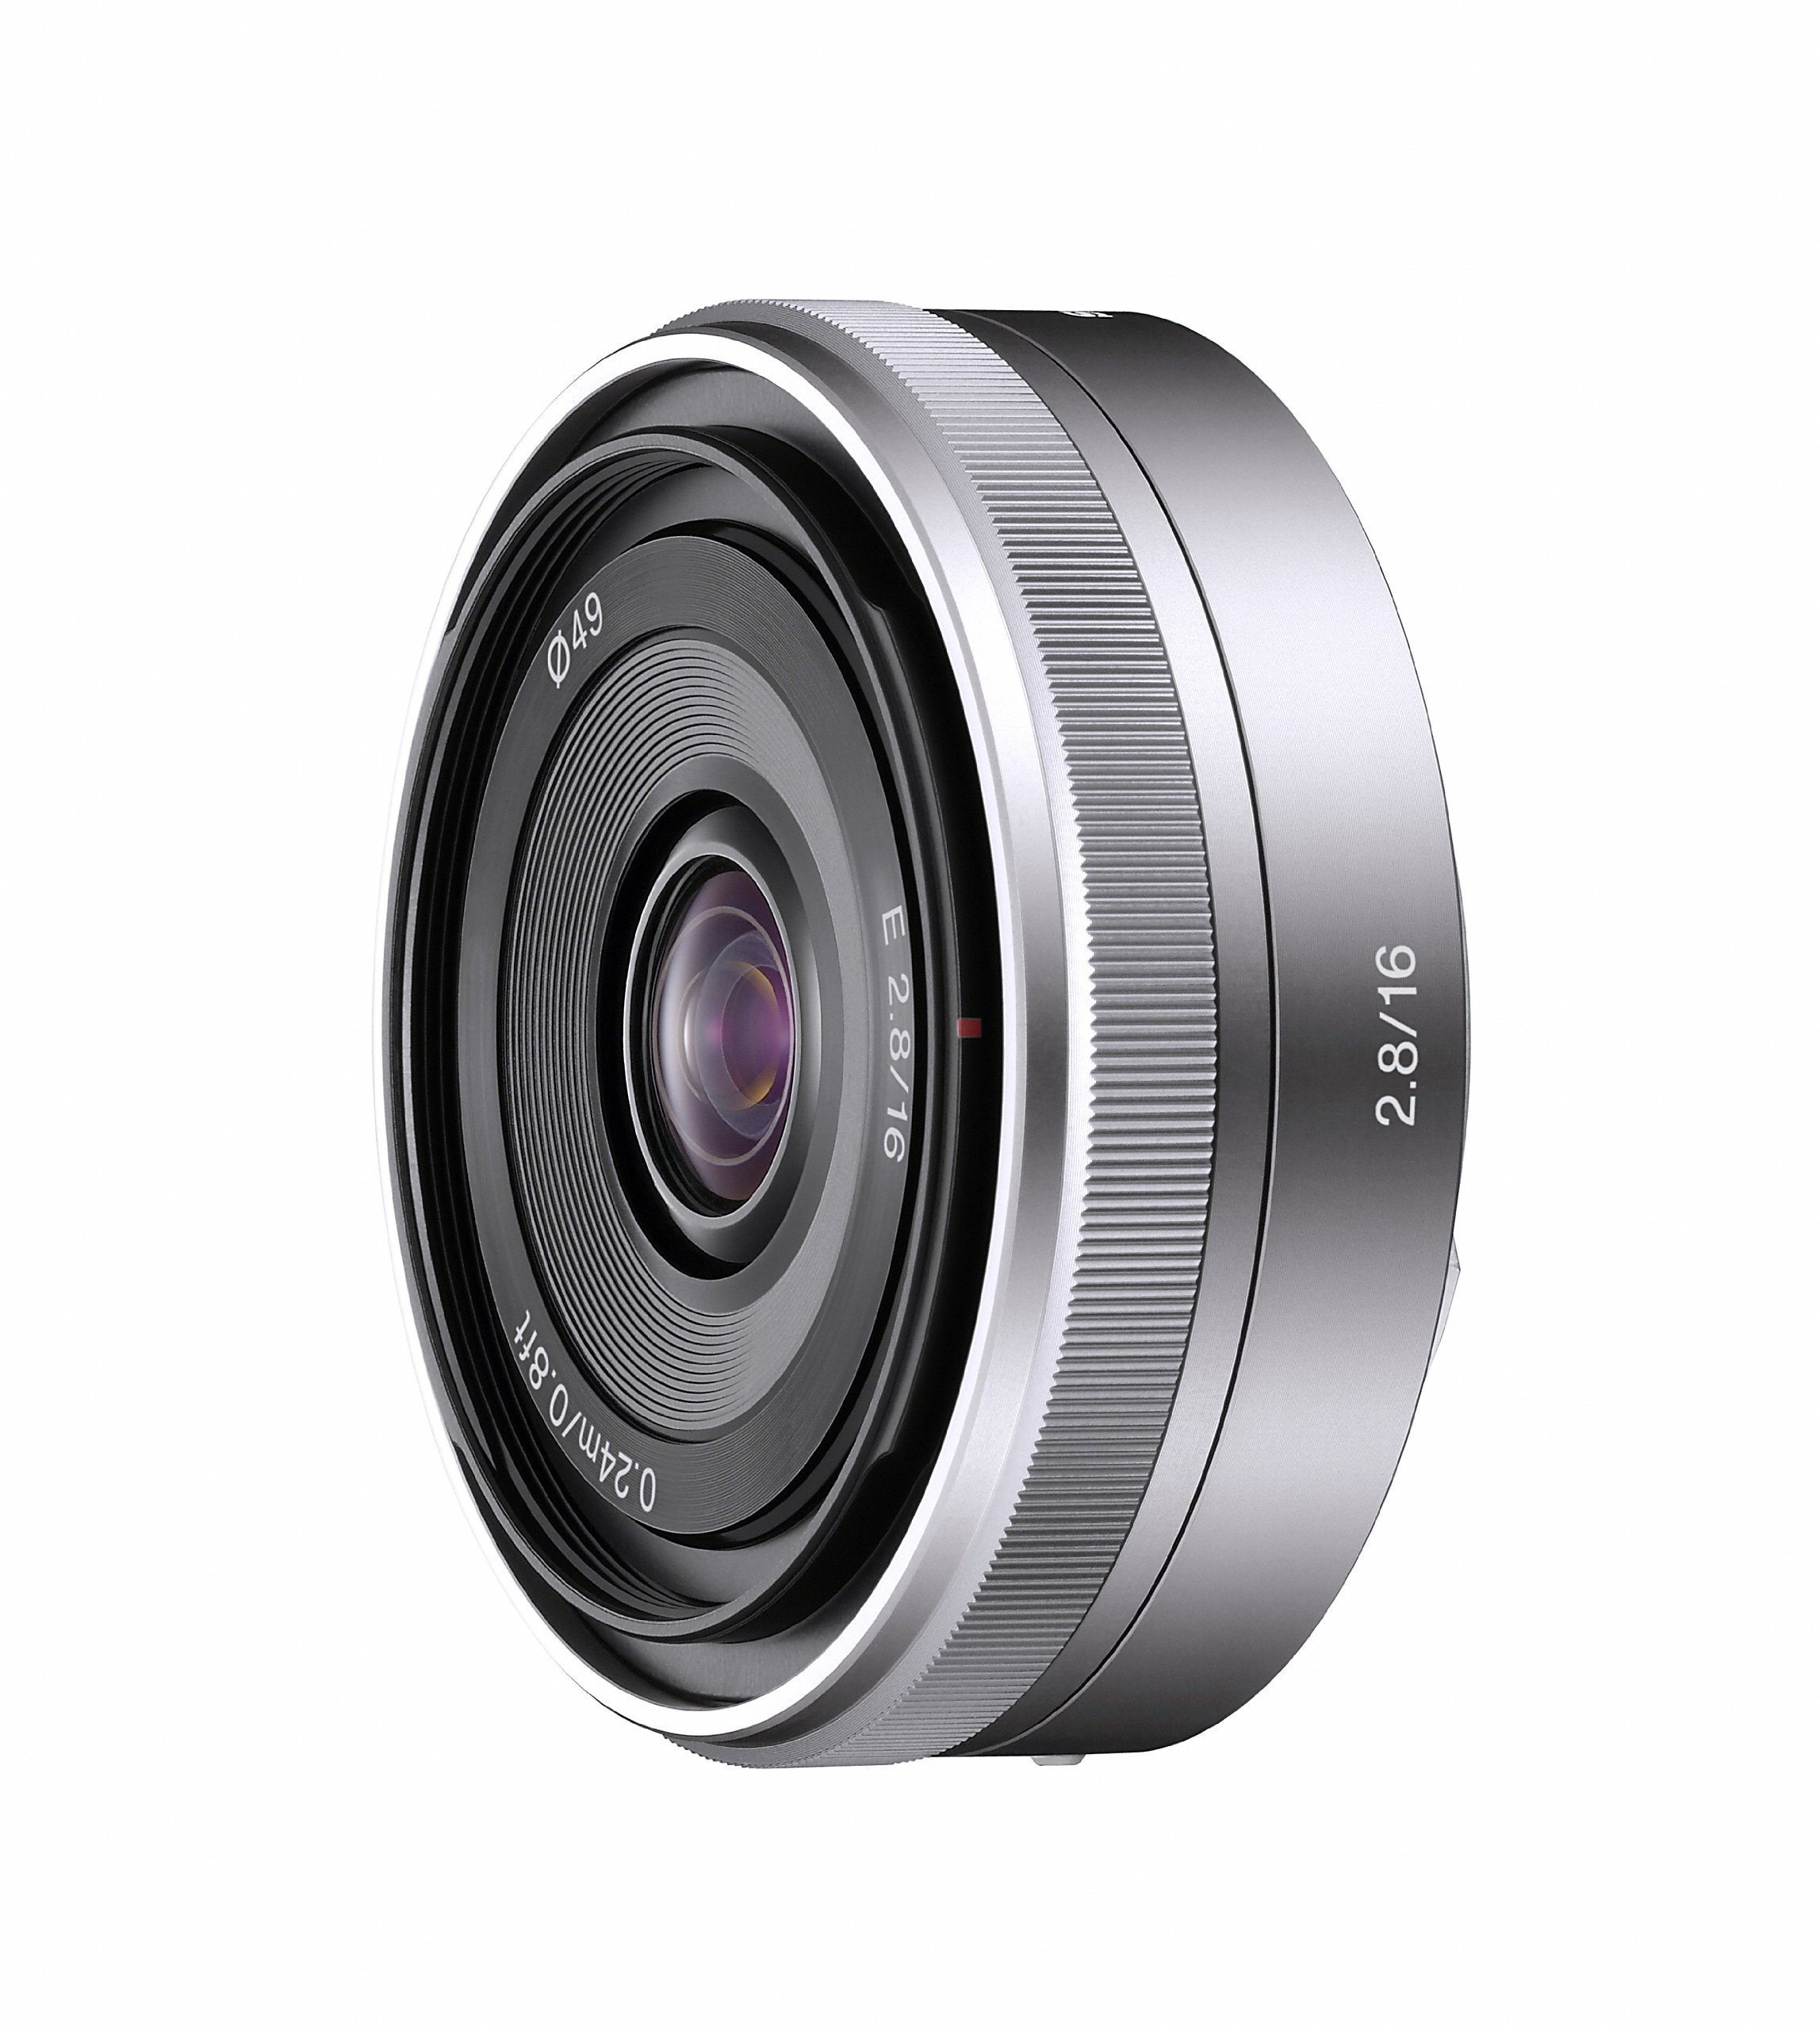 Sony SEL16F28 Wide Angle Lens